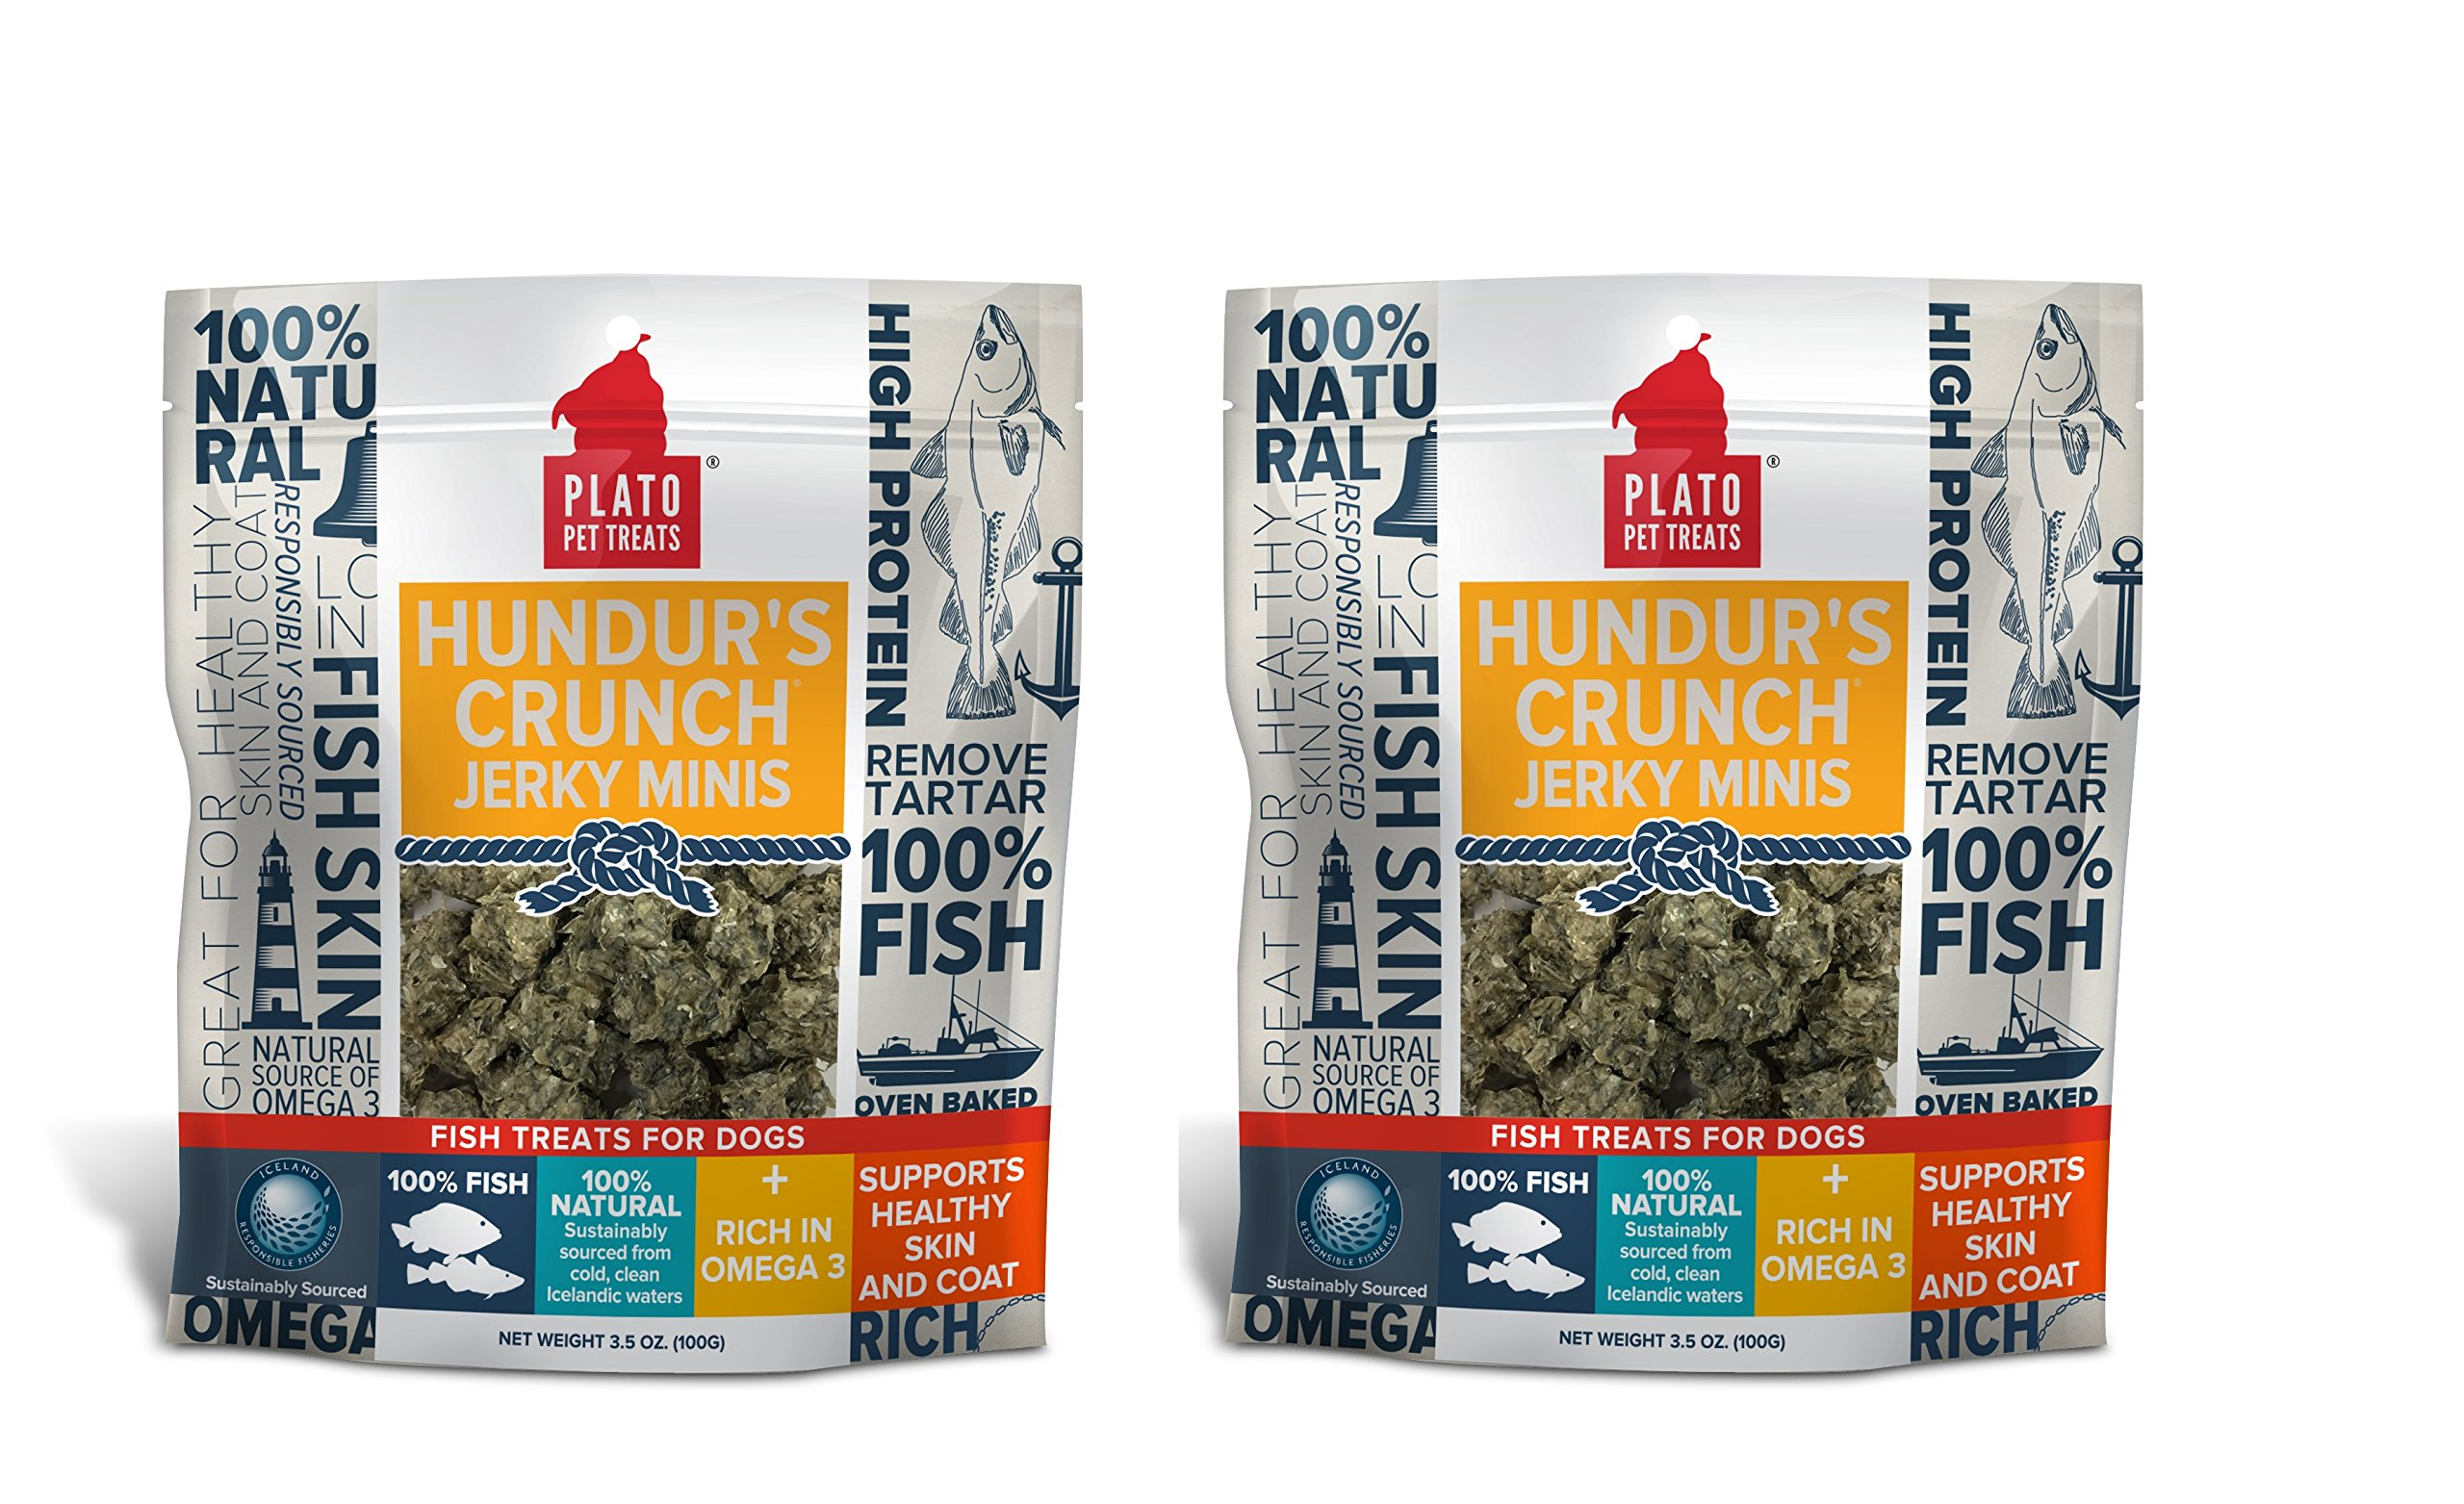 PLATO Dog Treats - Hundur's Crunch Jerky Minis - Pet Treats, All-Natural, Non-GMO, No Artificial Flavors, or Preservatives, Made in the USA